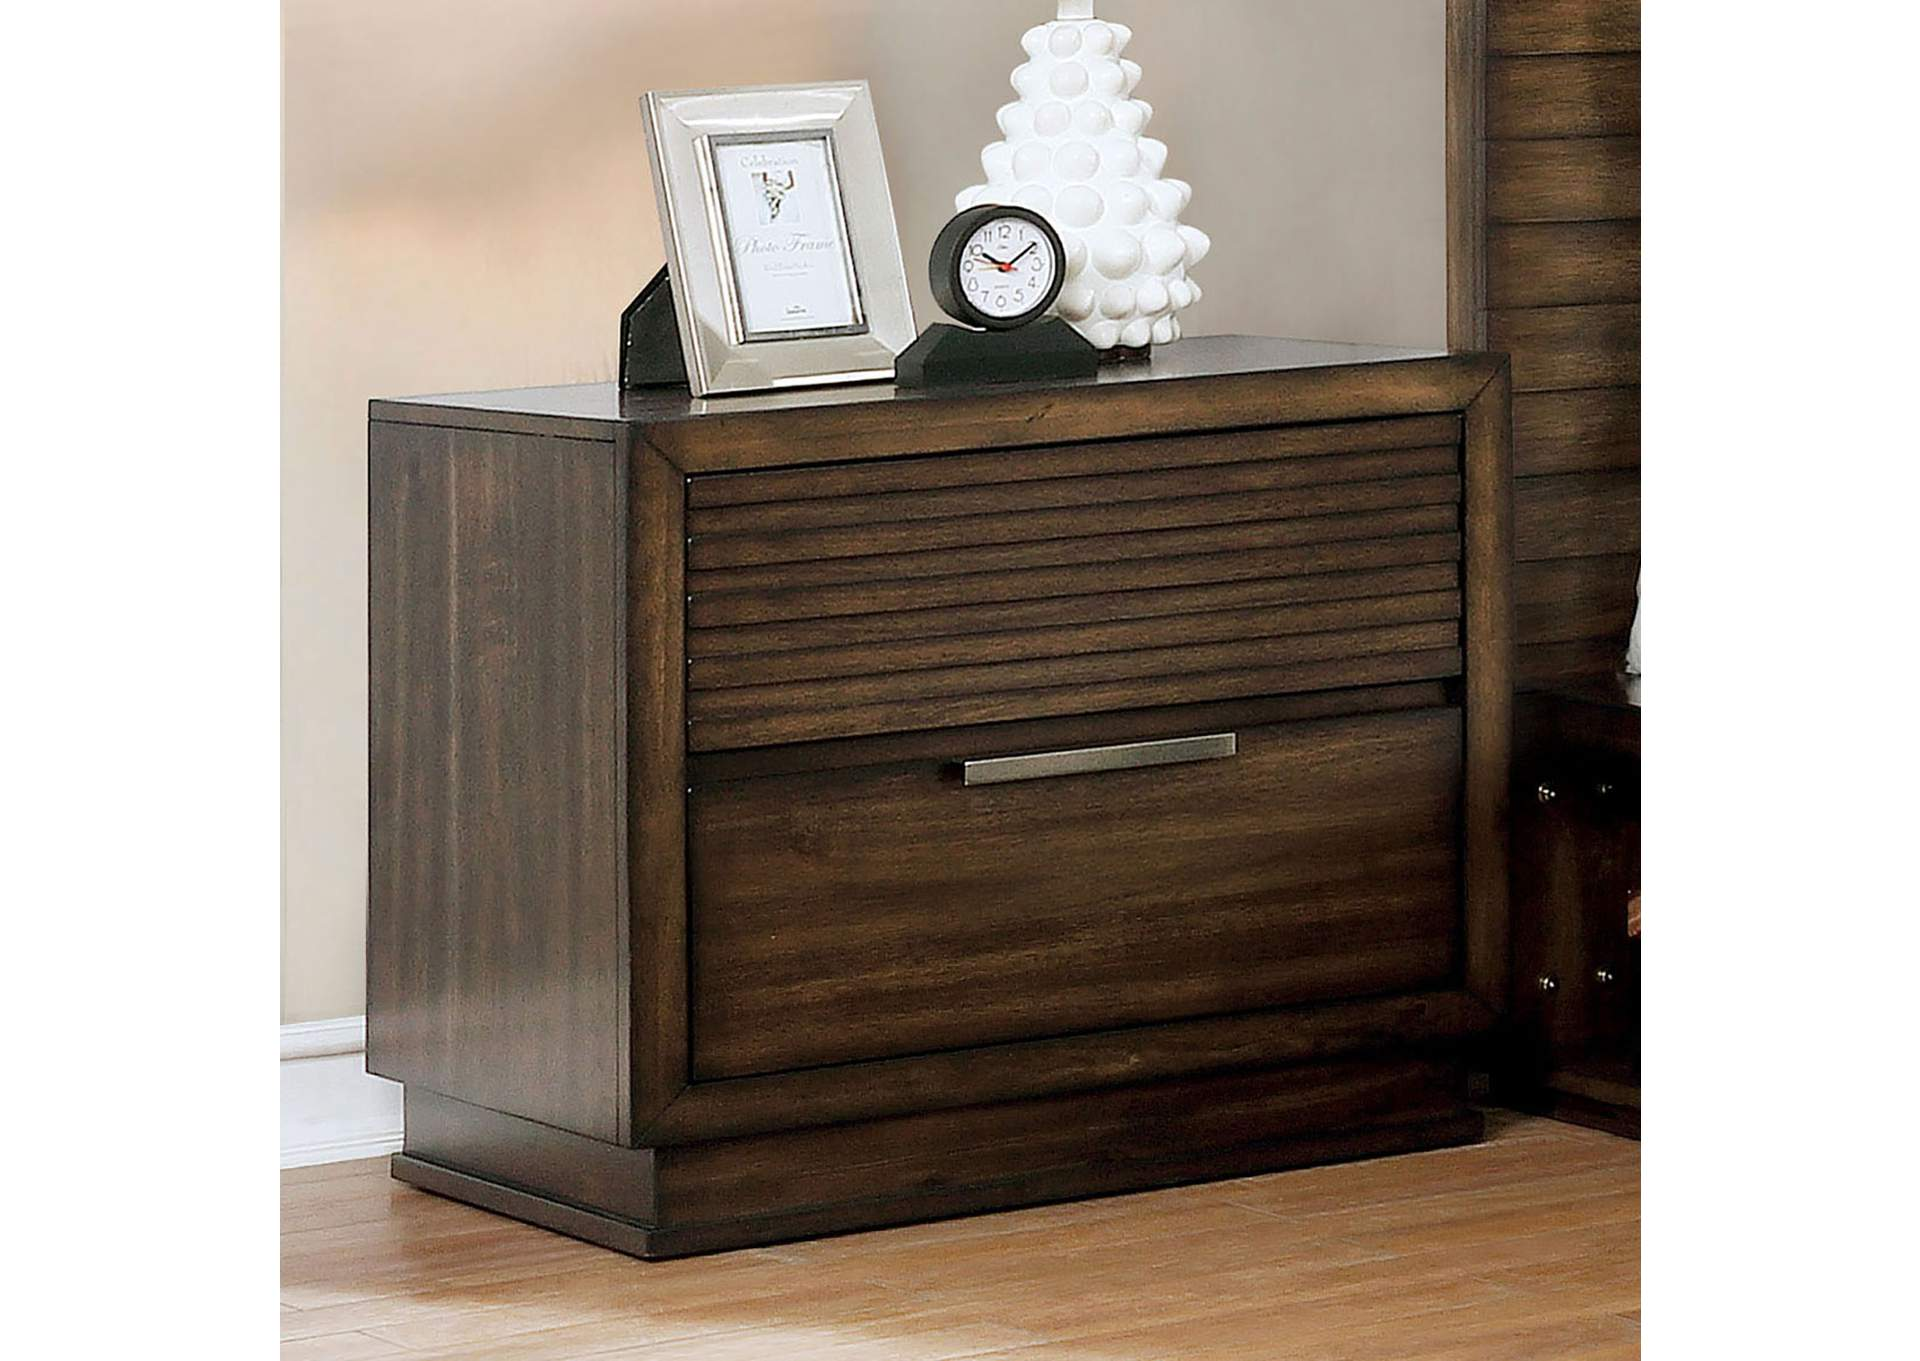 Tolna Brown Nightstand,Furniture of America